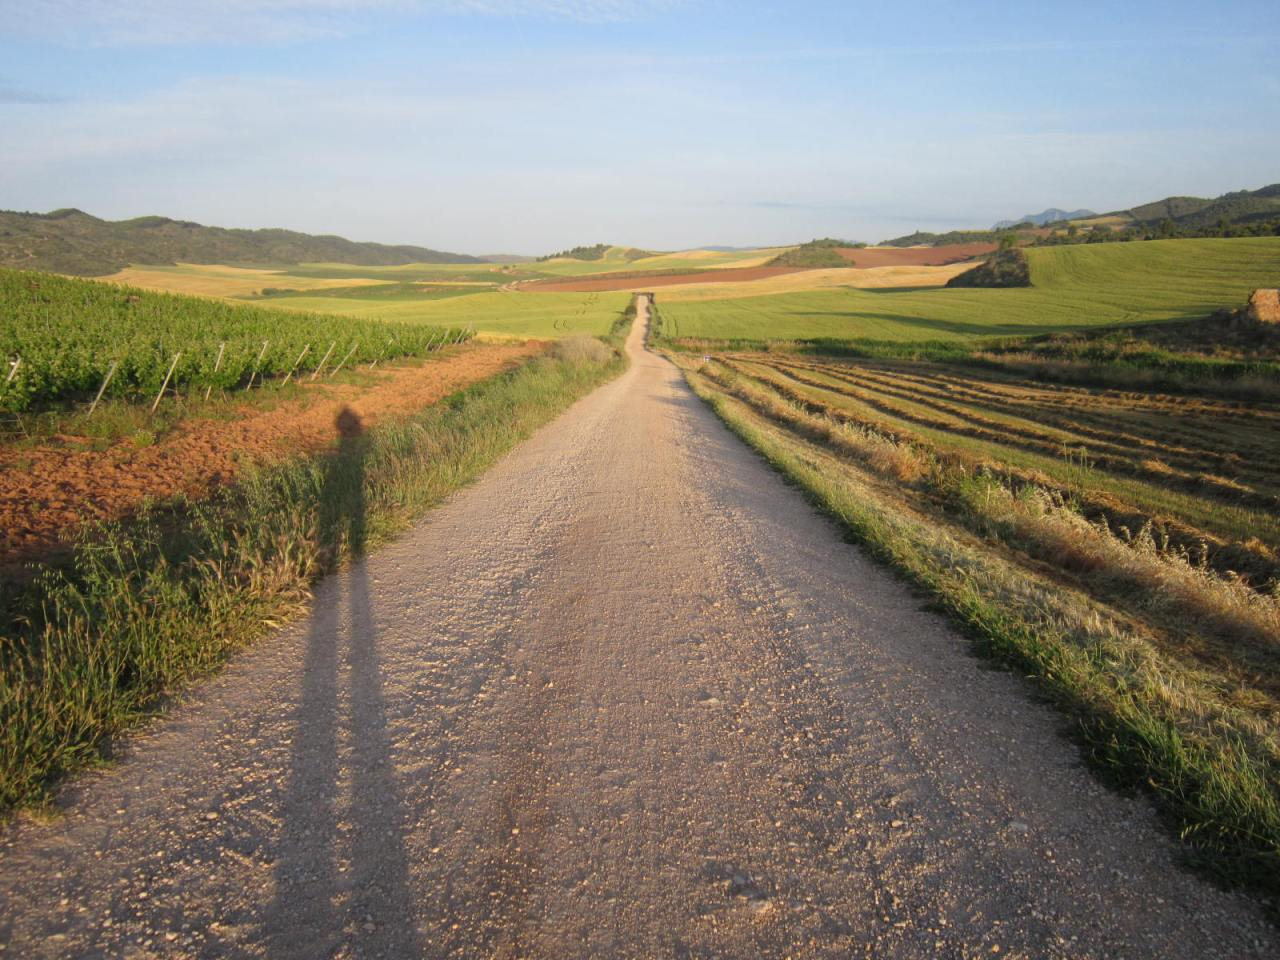 Sunrise on the Camino Frances / French Way